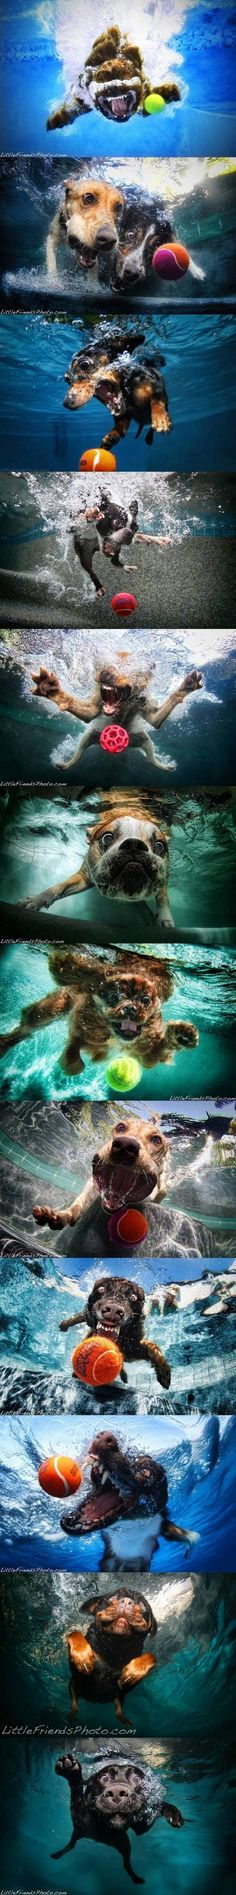 doggies/ These pictures are awesome!